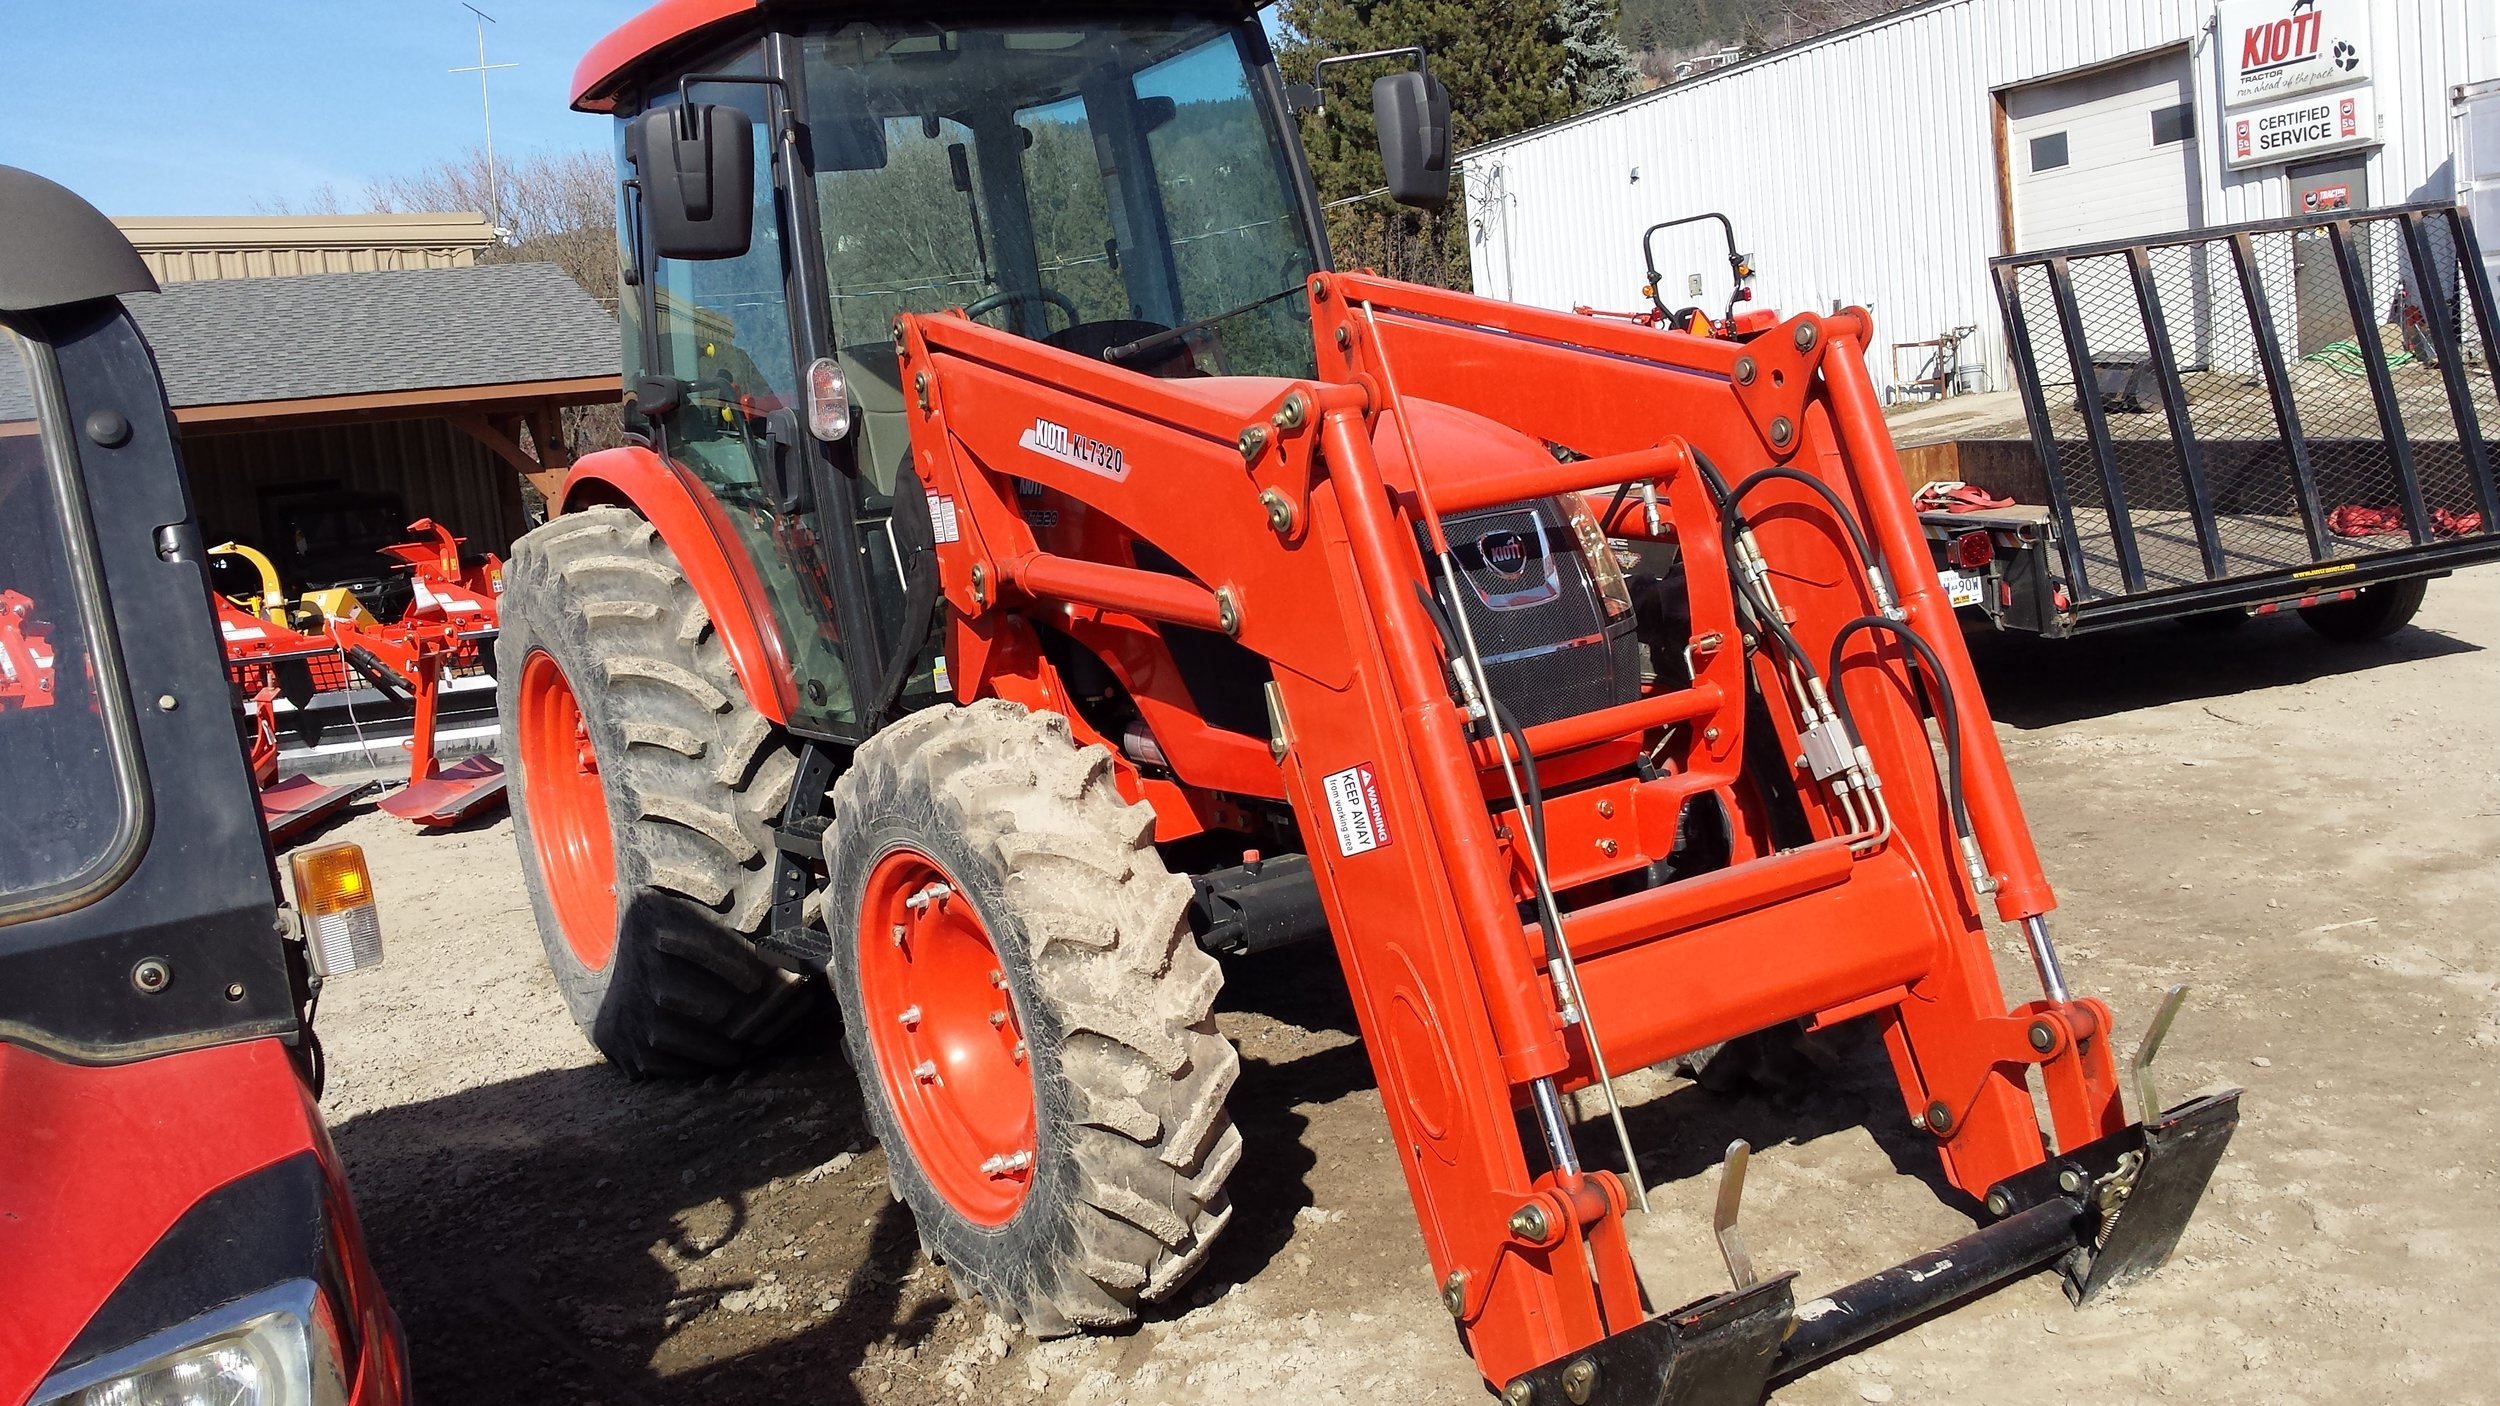 RX7320 Vernon tractor dealer timberstar tractor front right view.jpg